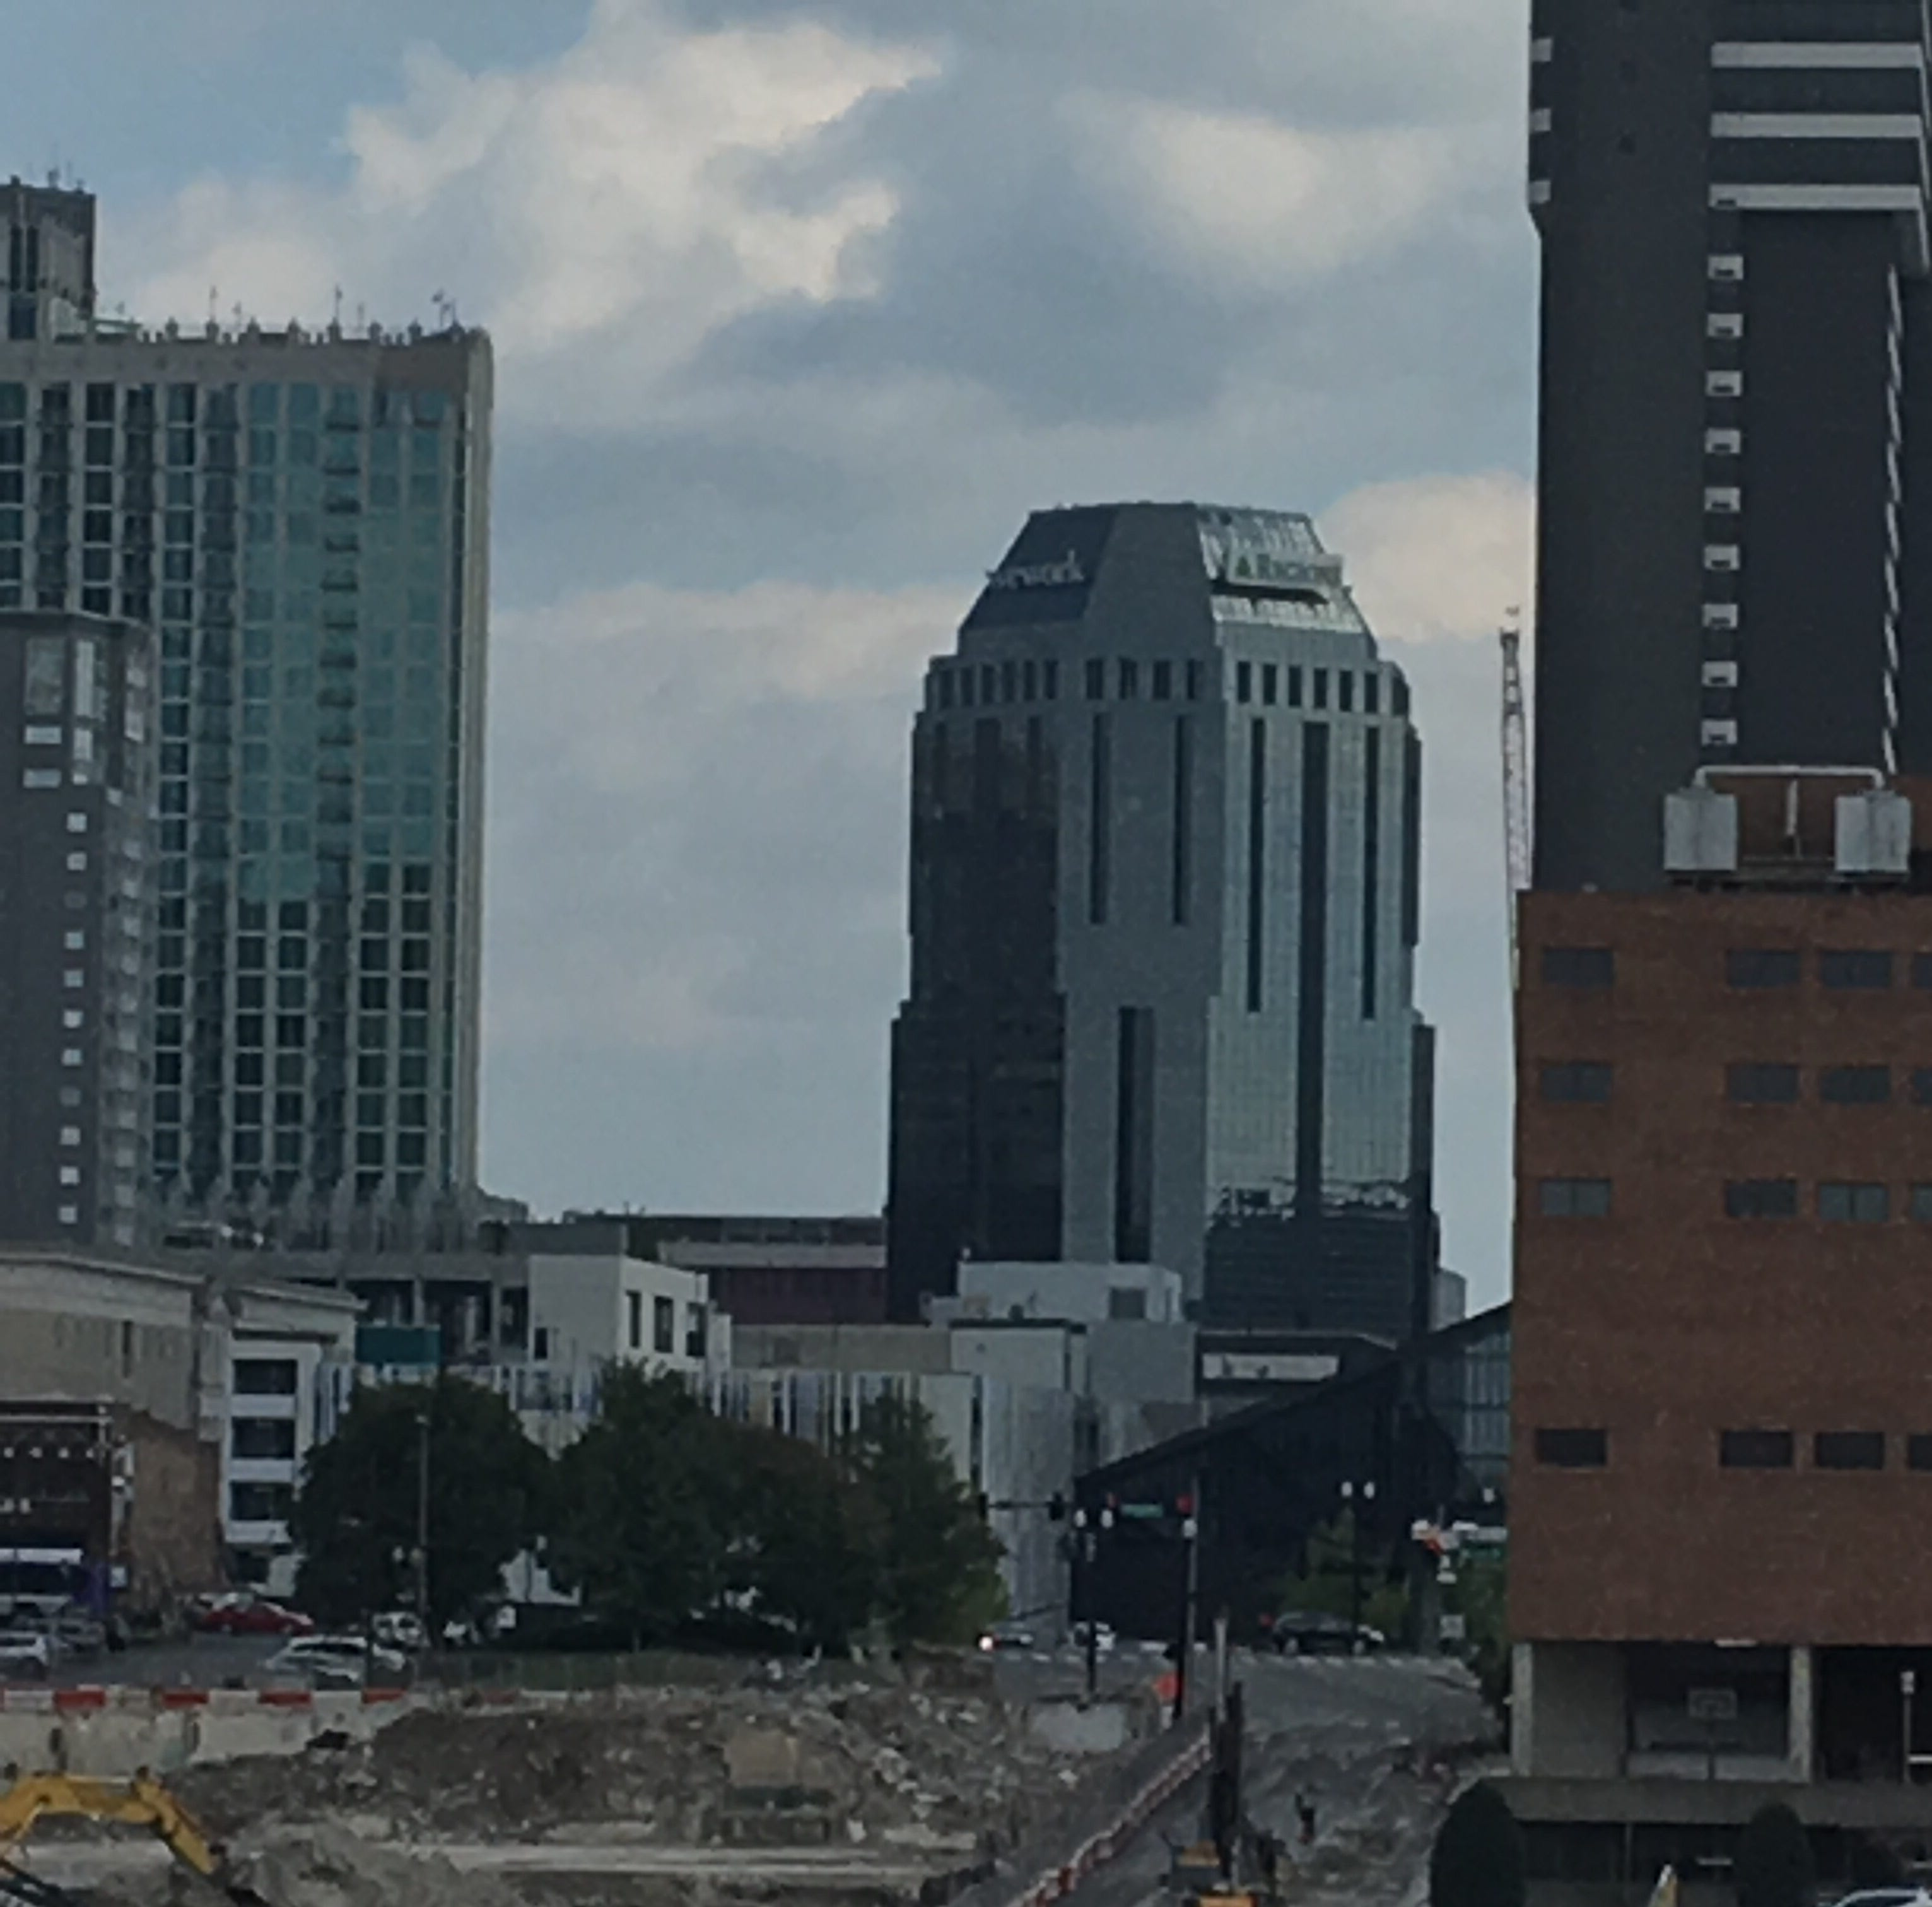 The Wework, Regions Bank building at 150 4th...